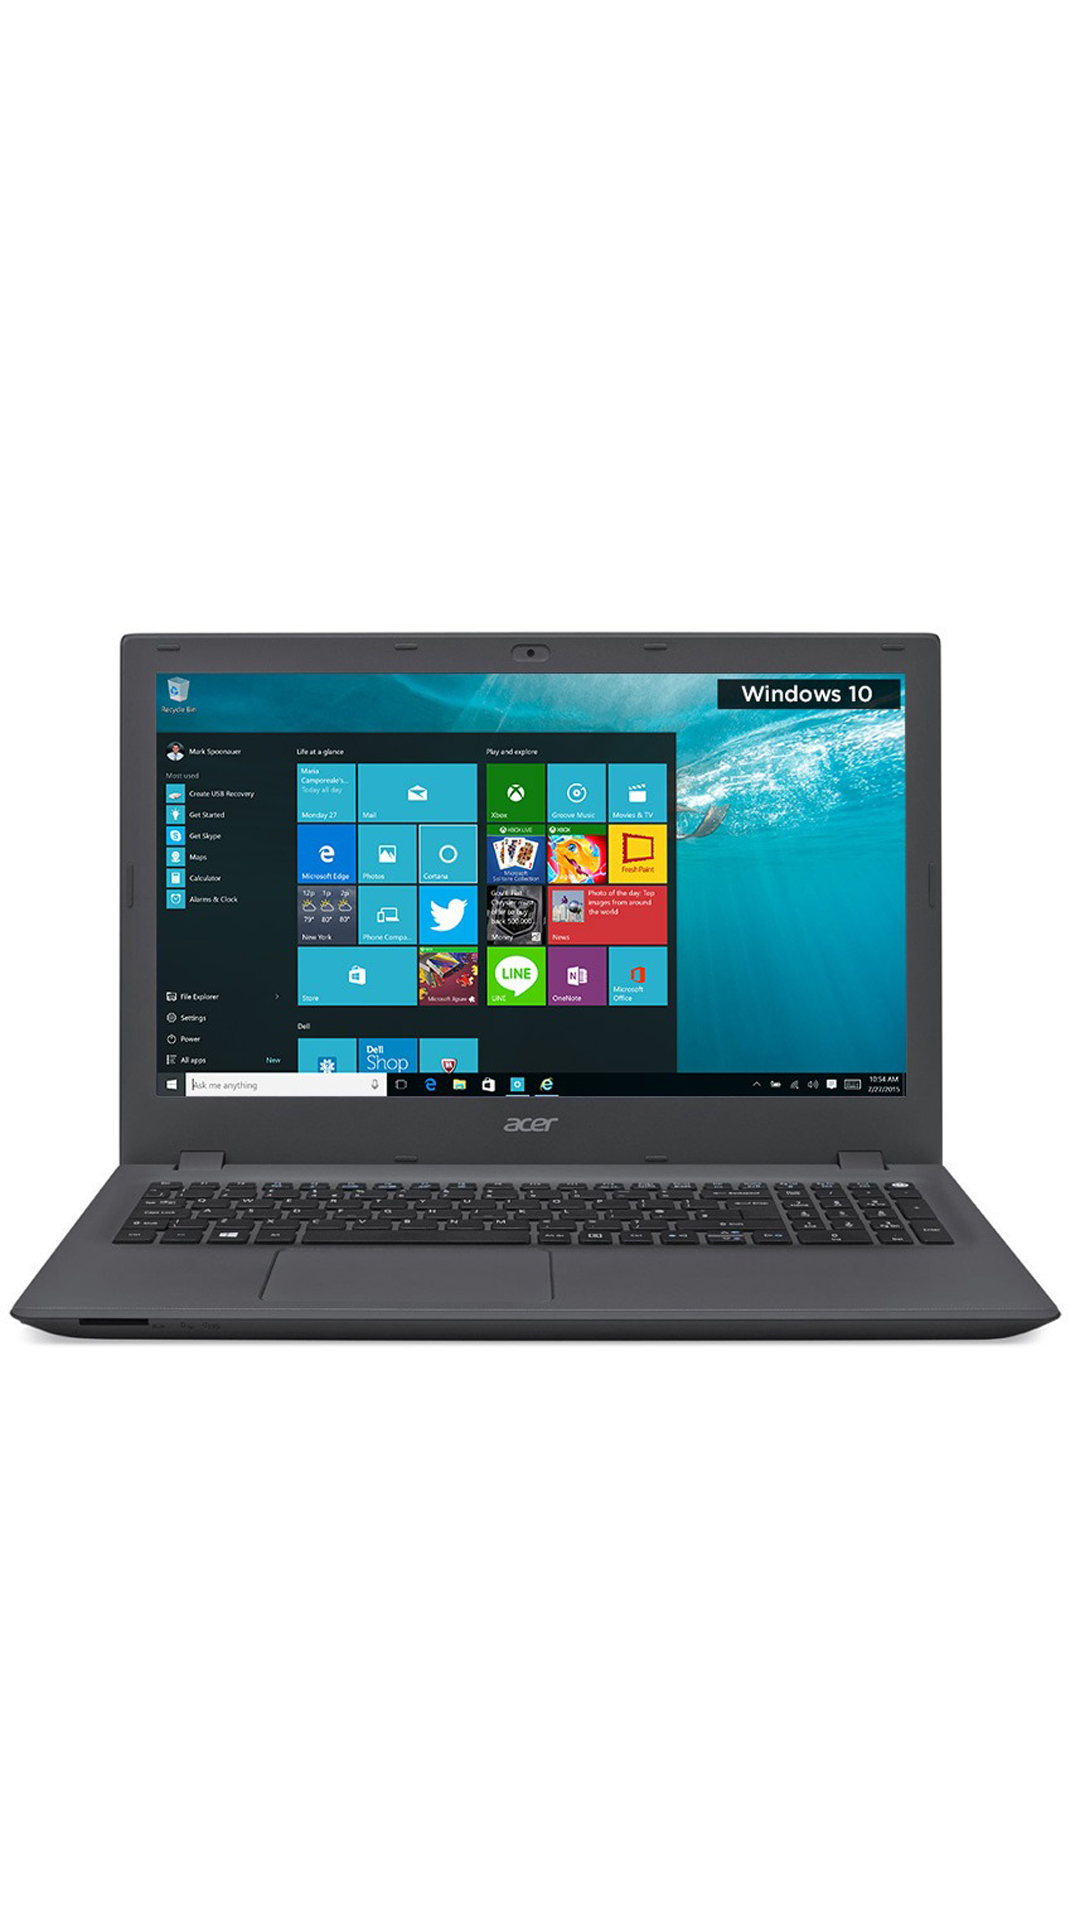 Acer F5-571-33M2 (UN.G9ZSI.001) (Core i3 (5th Gen)/4 GB/1 TB/15.6/Windows 10 Home) (Charcoal Black)